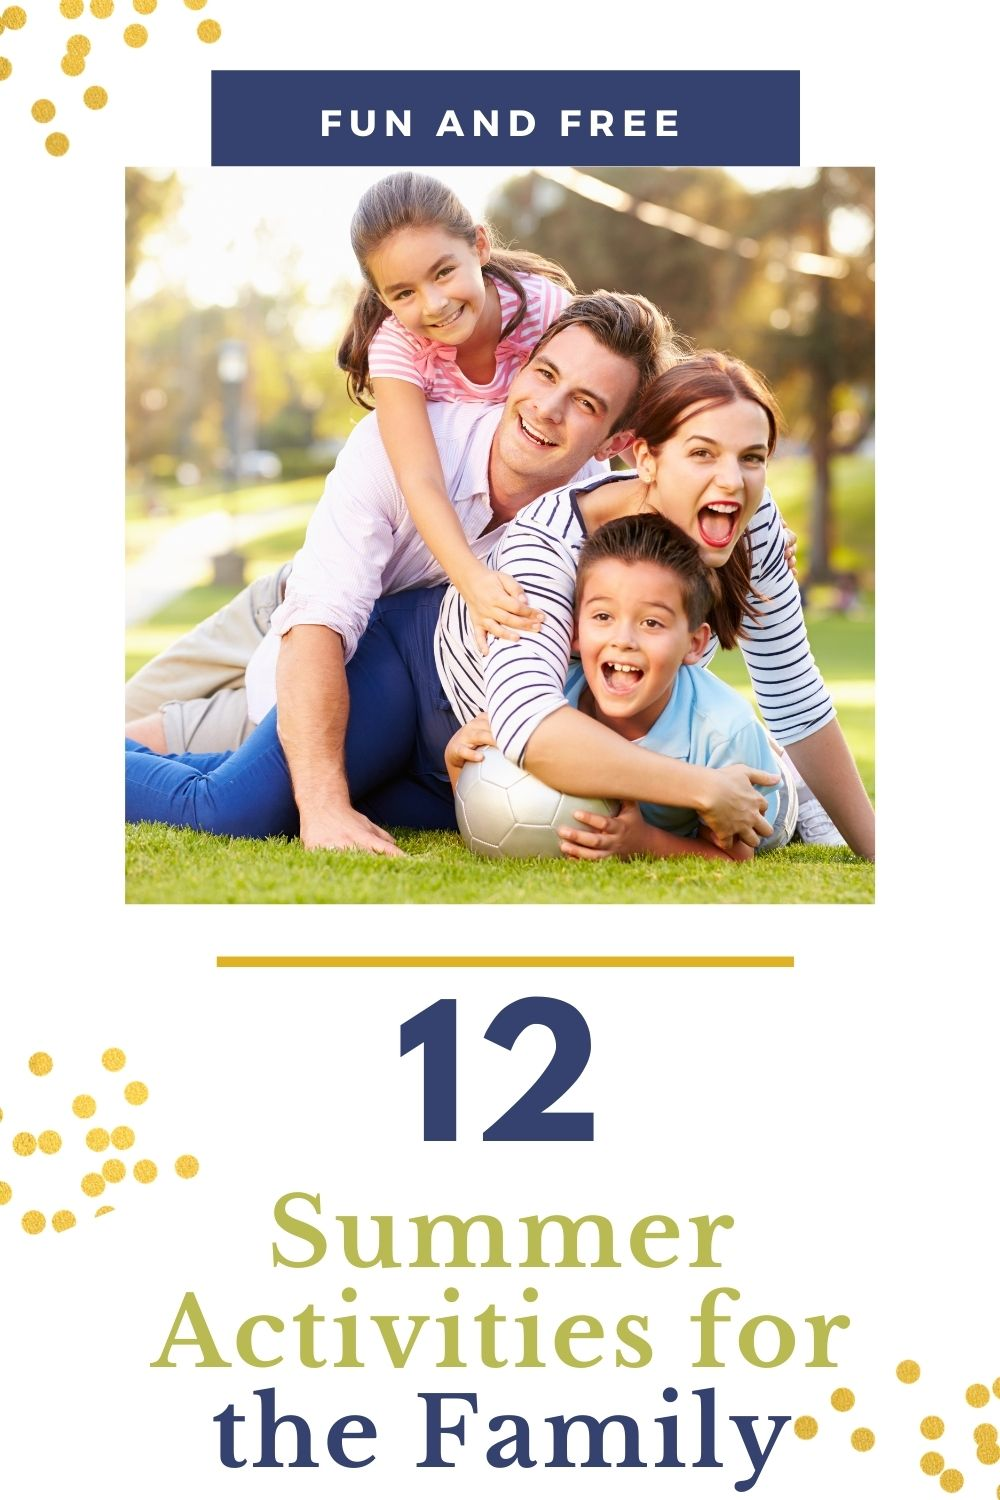 12 Fun and Free Summer Activities for the Family